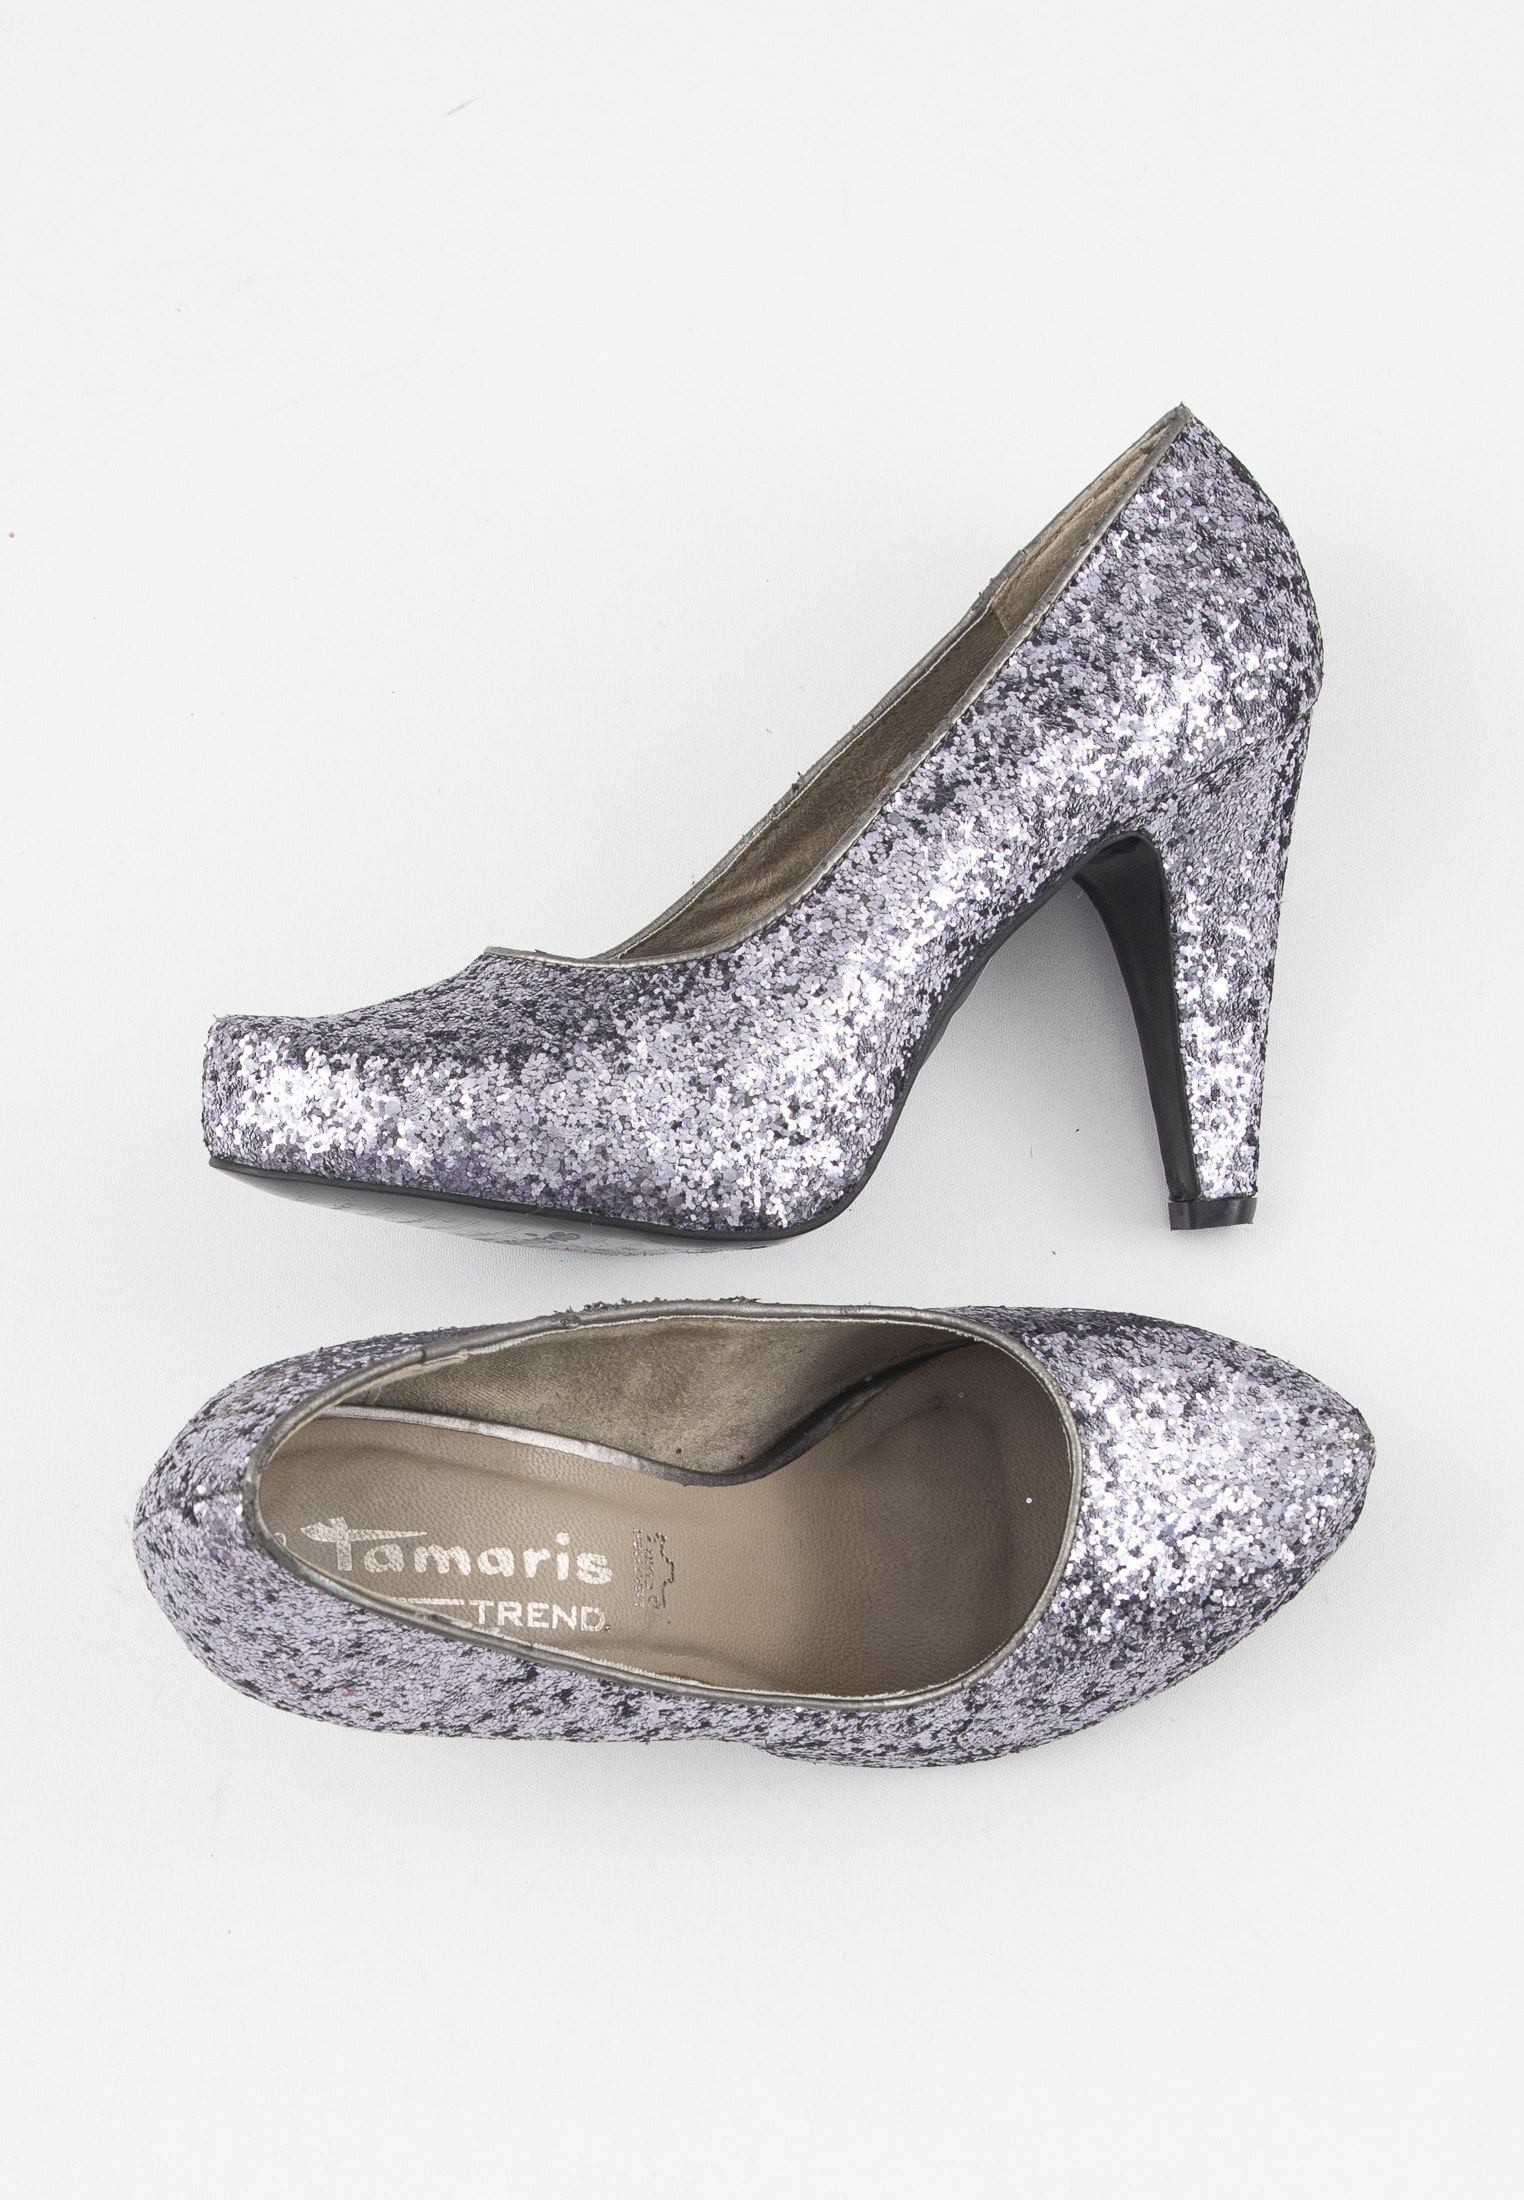 Tamaris pumps, silver, 38